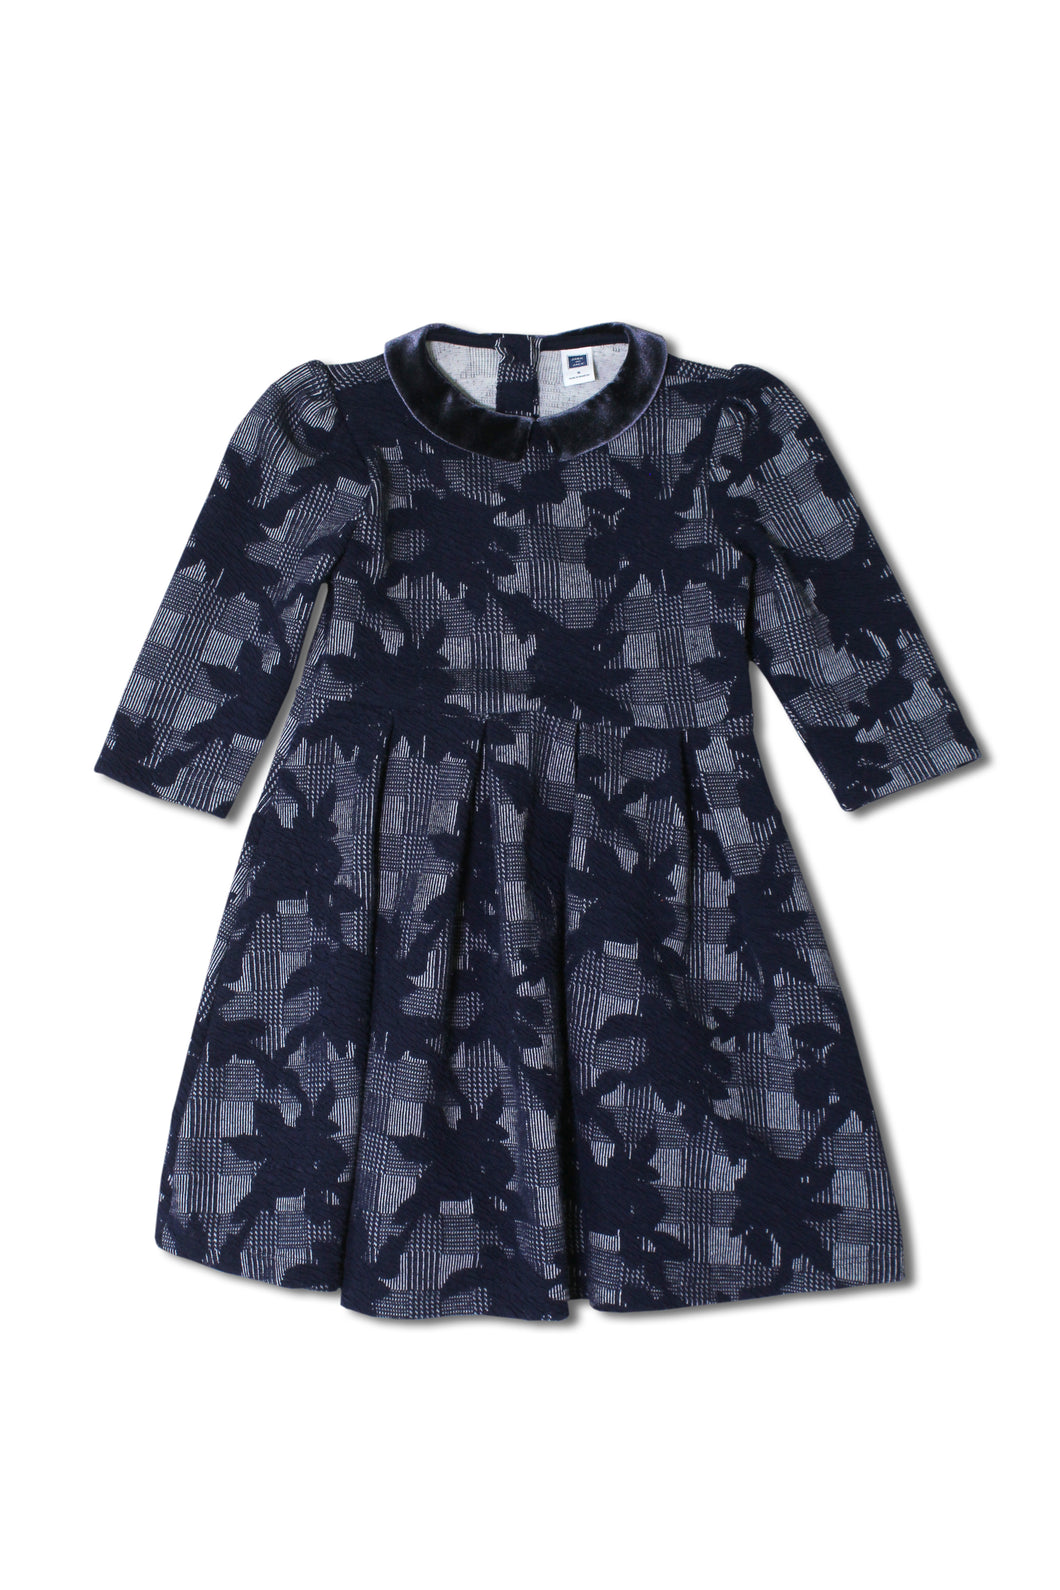 Janie and Jack Blue Dress